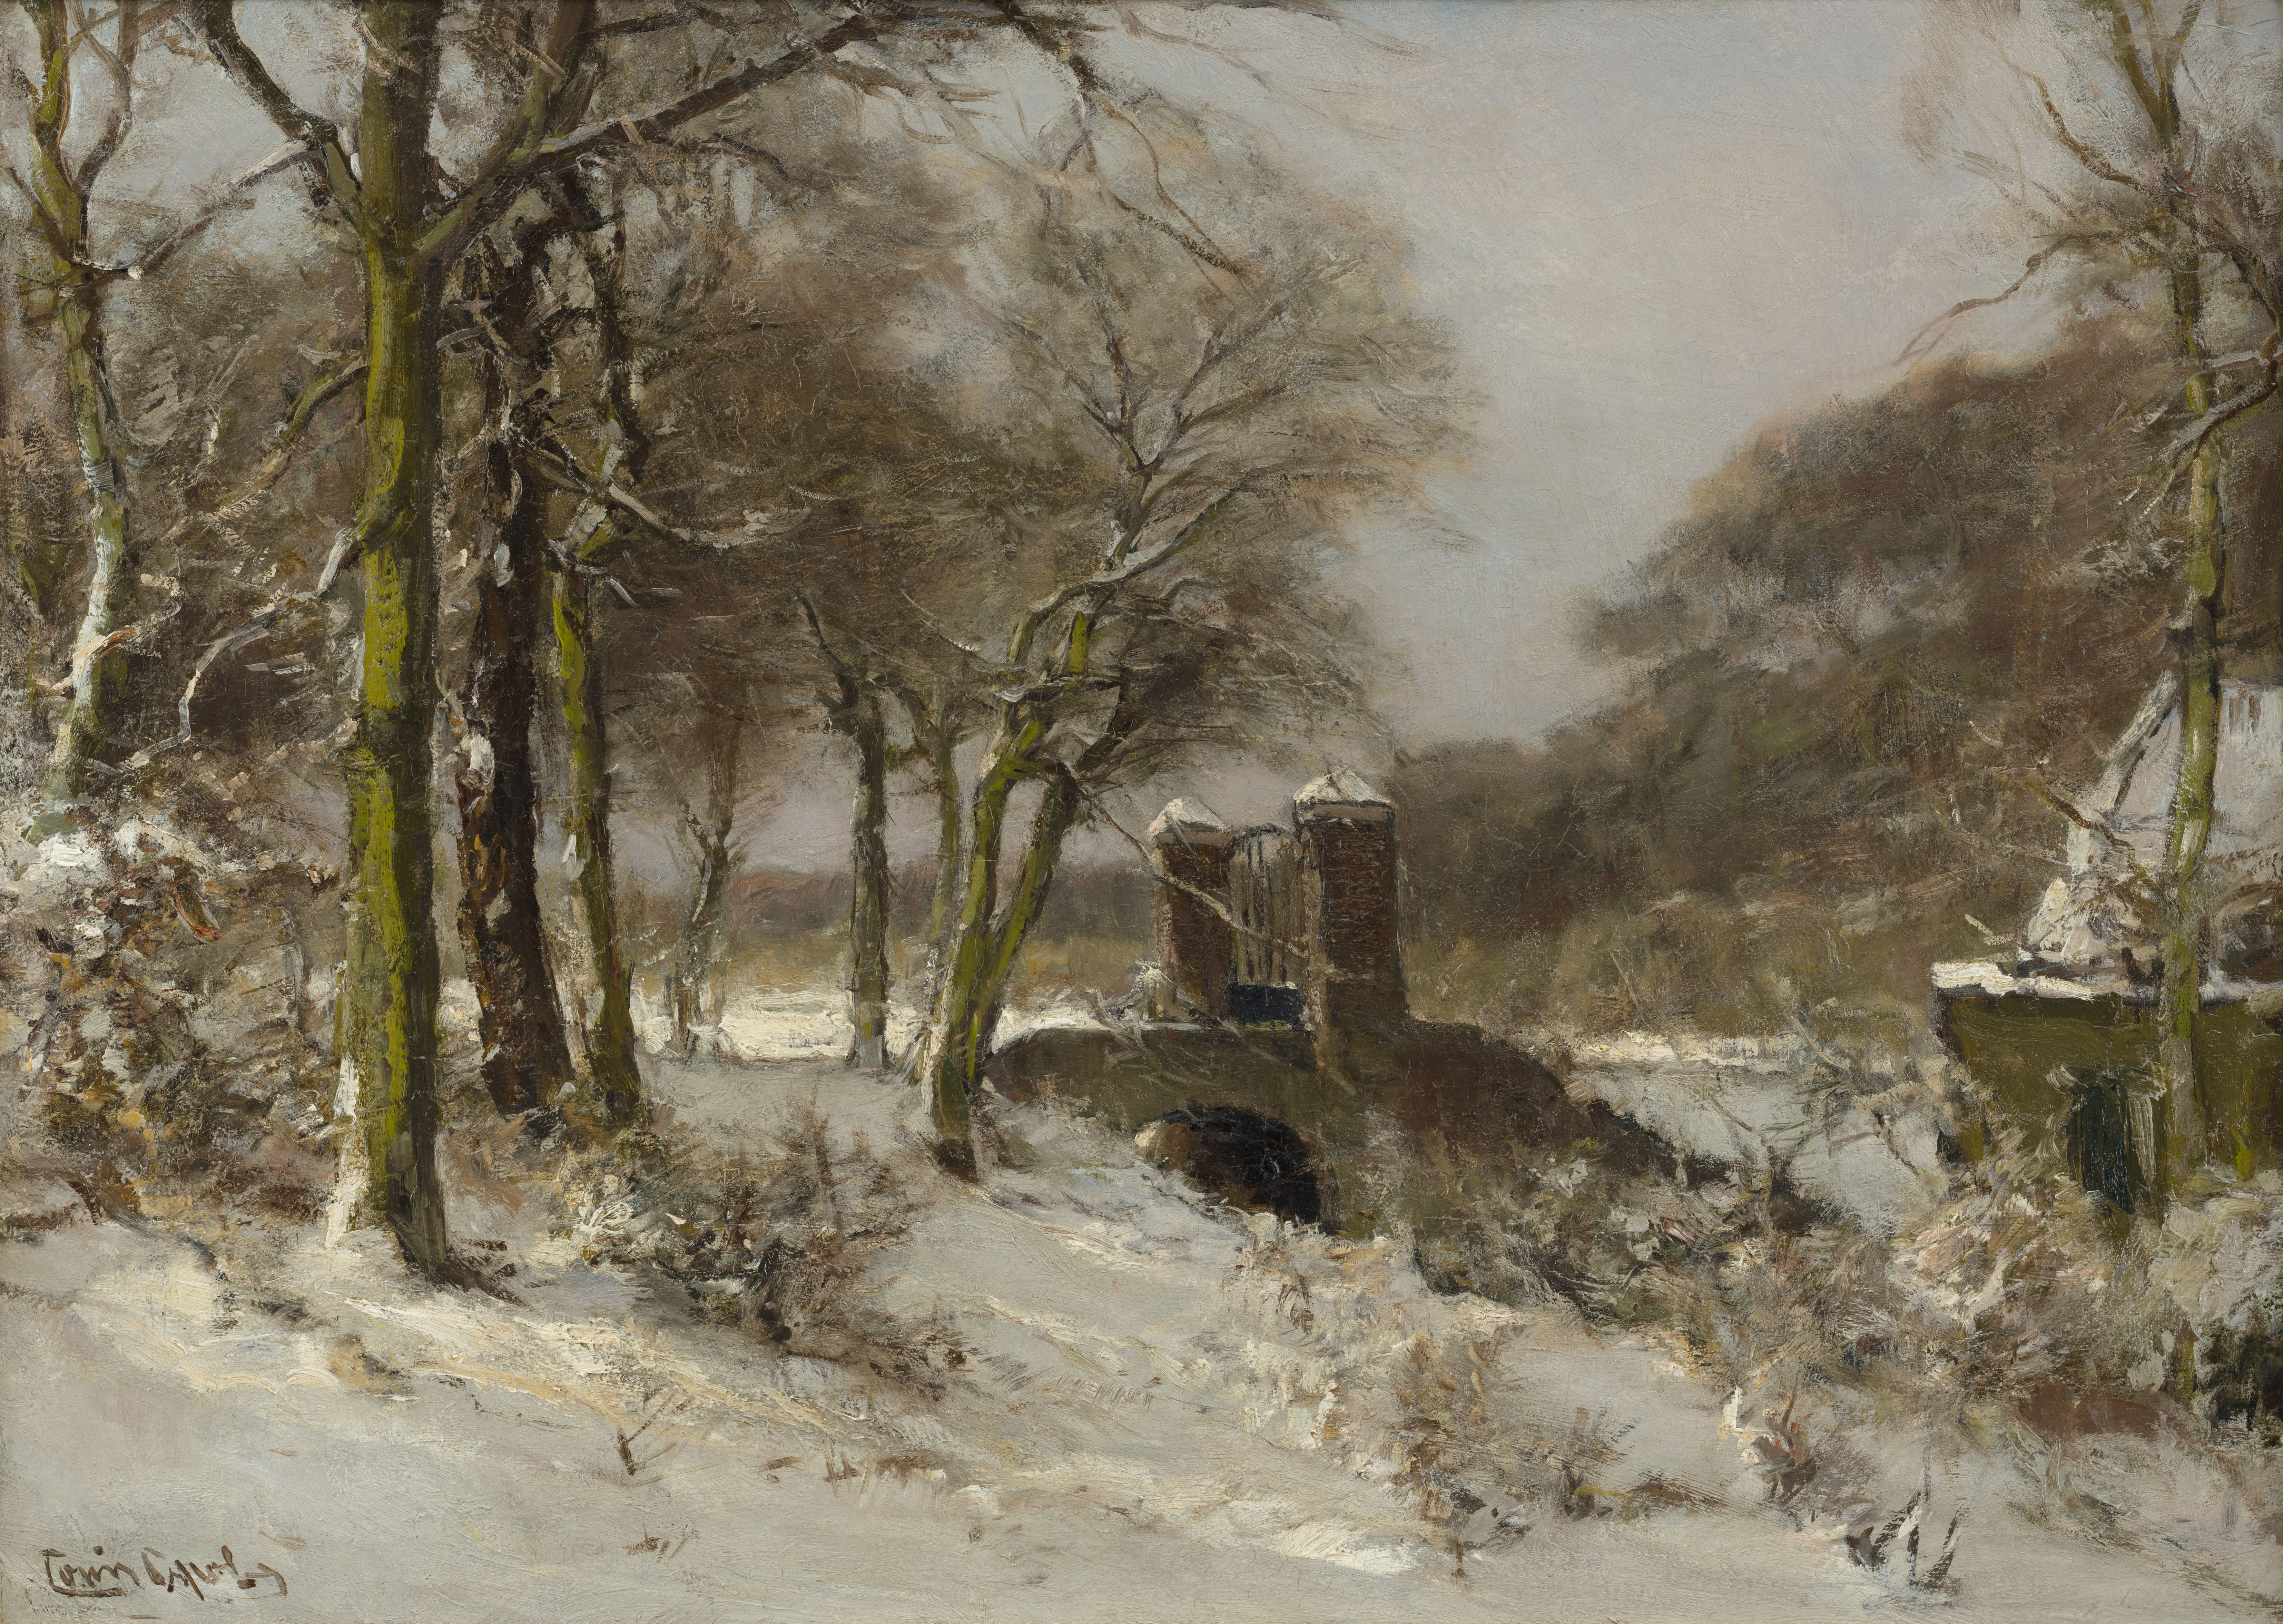 Image | Louis Apol | A gateway in Haagse Bos in winter